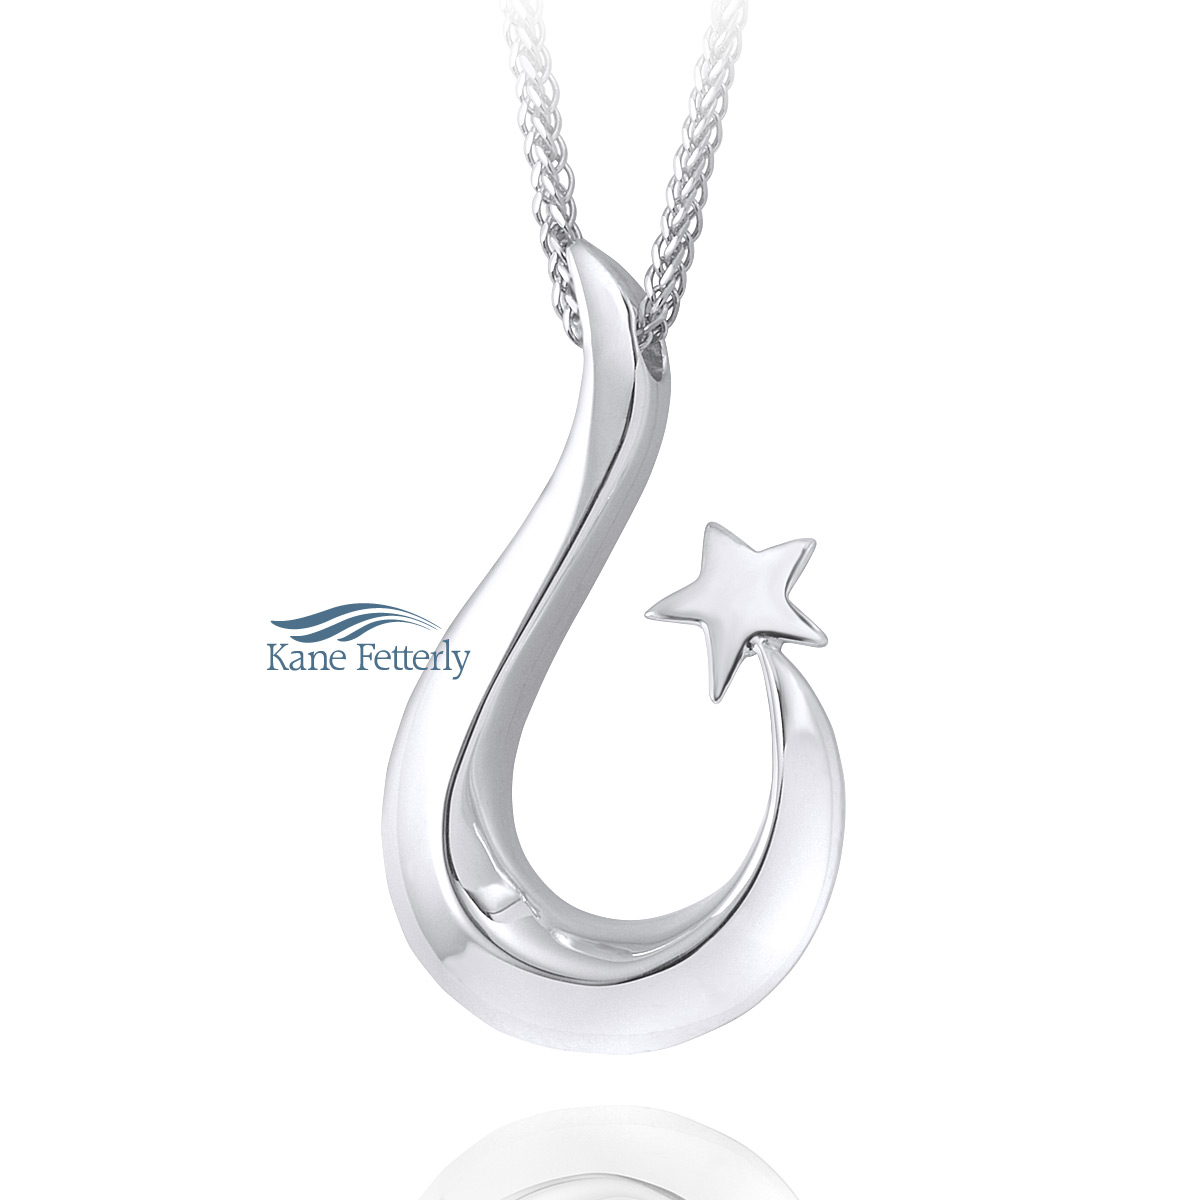 J0188 Star pendant in sterling silver